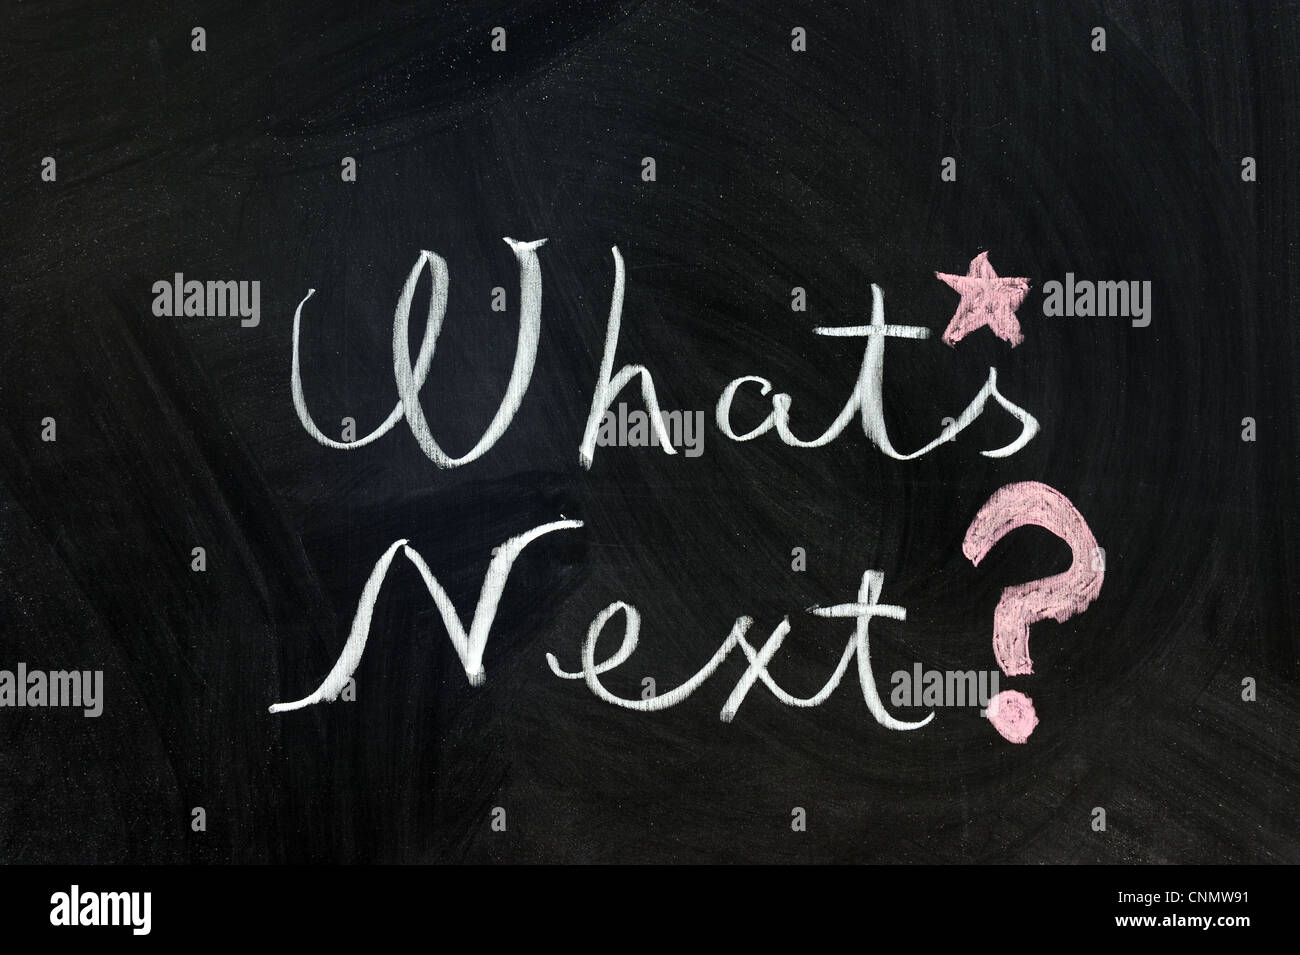 Chalk writing - What's next words written on chalkboard - Stock Image